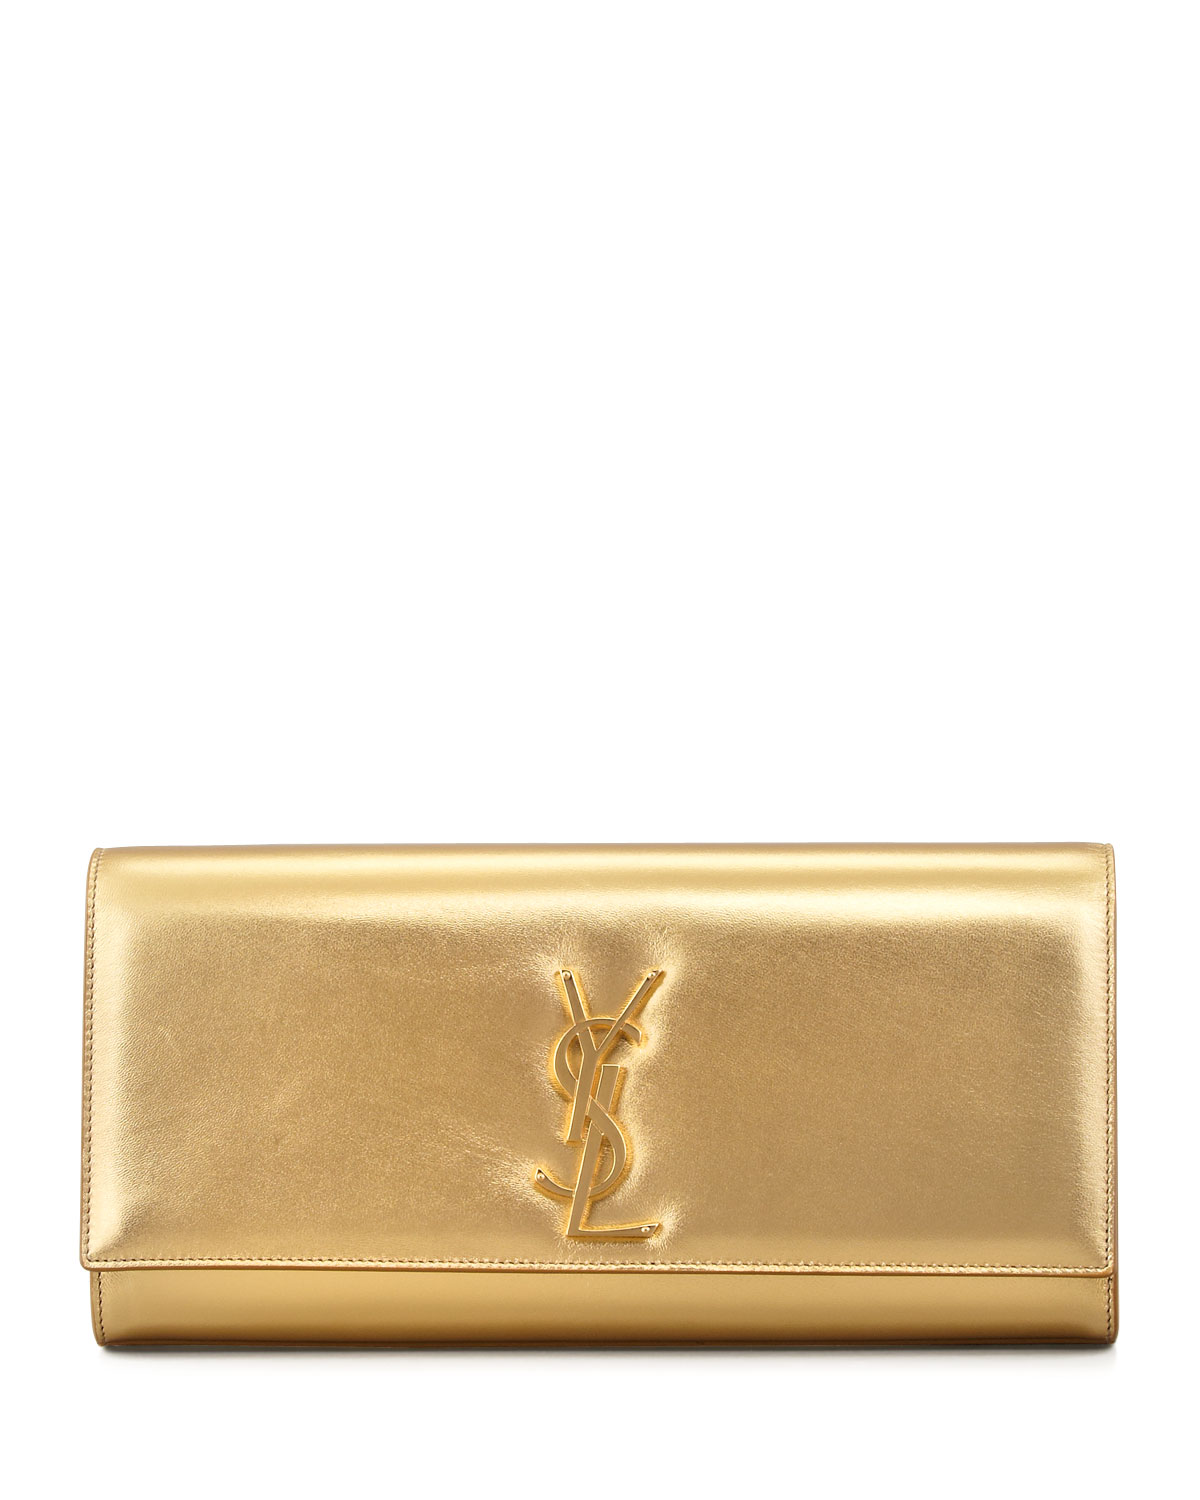 48bca83dc038e Saint Laurent Cassandre Clutch Bag, Gold | Neiman Marcus